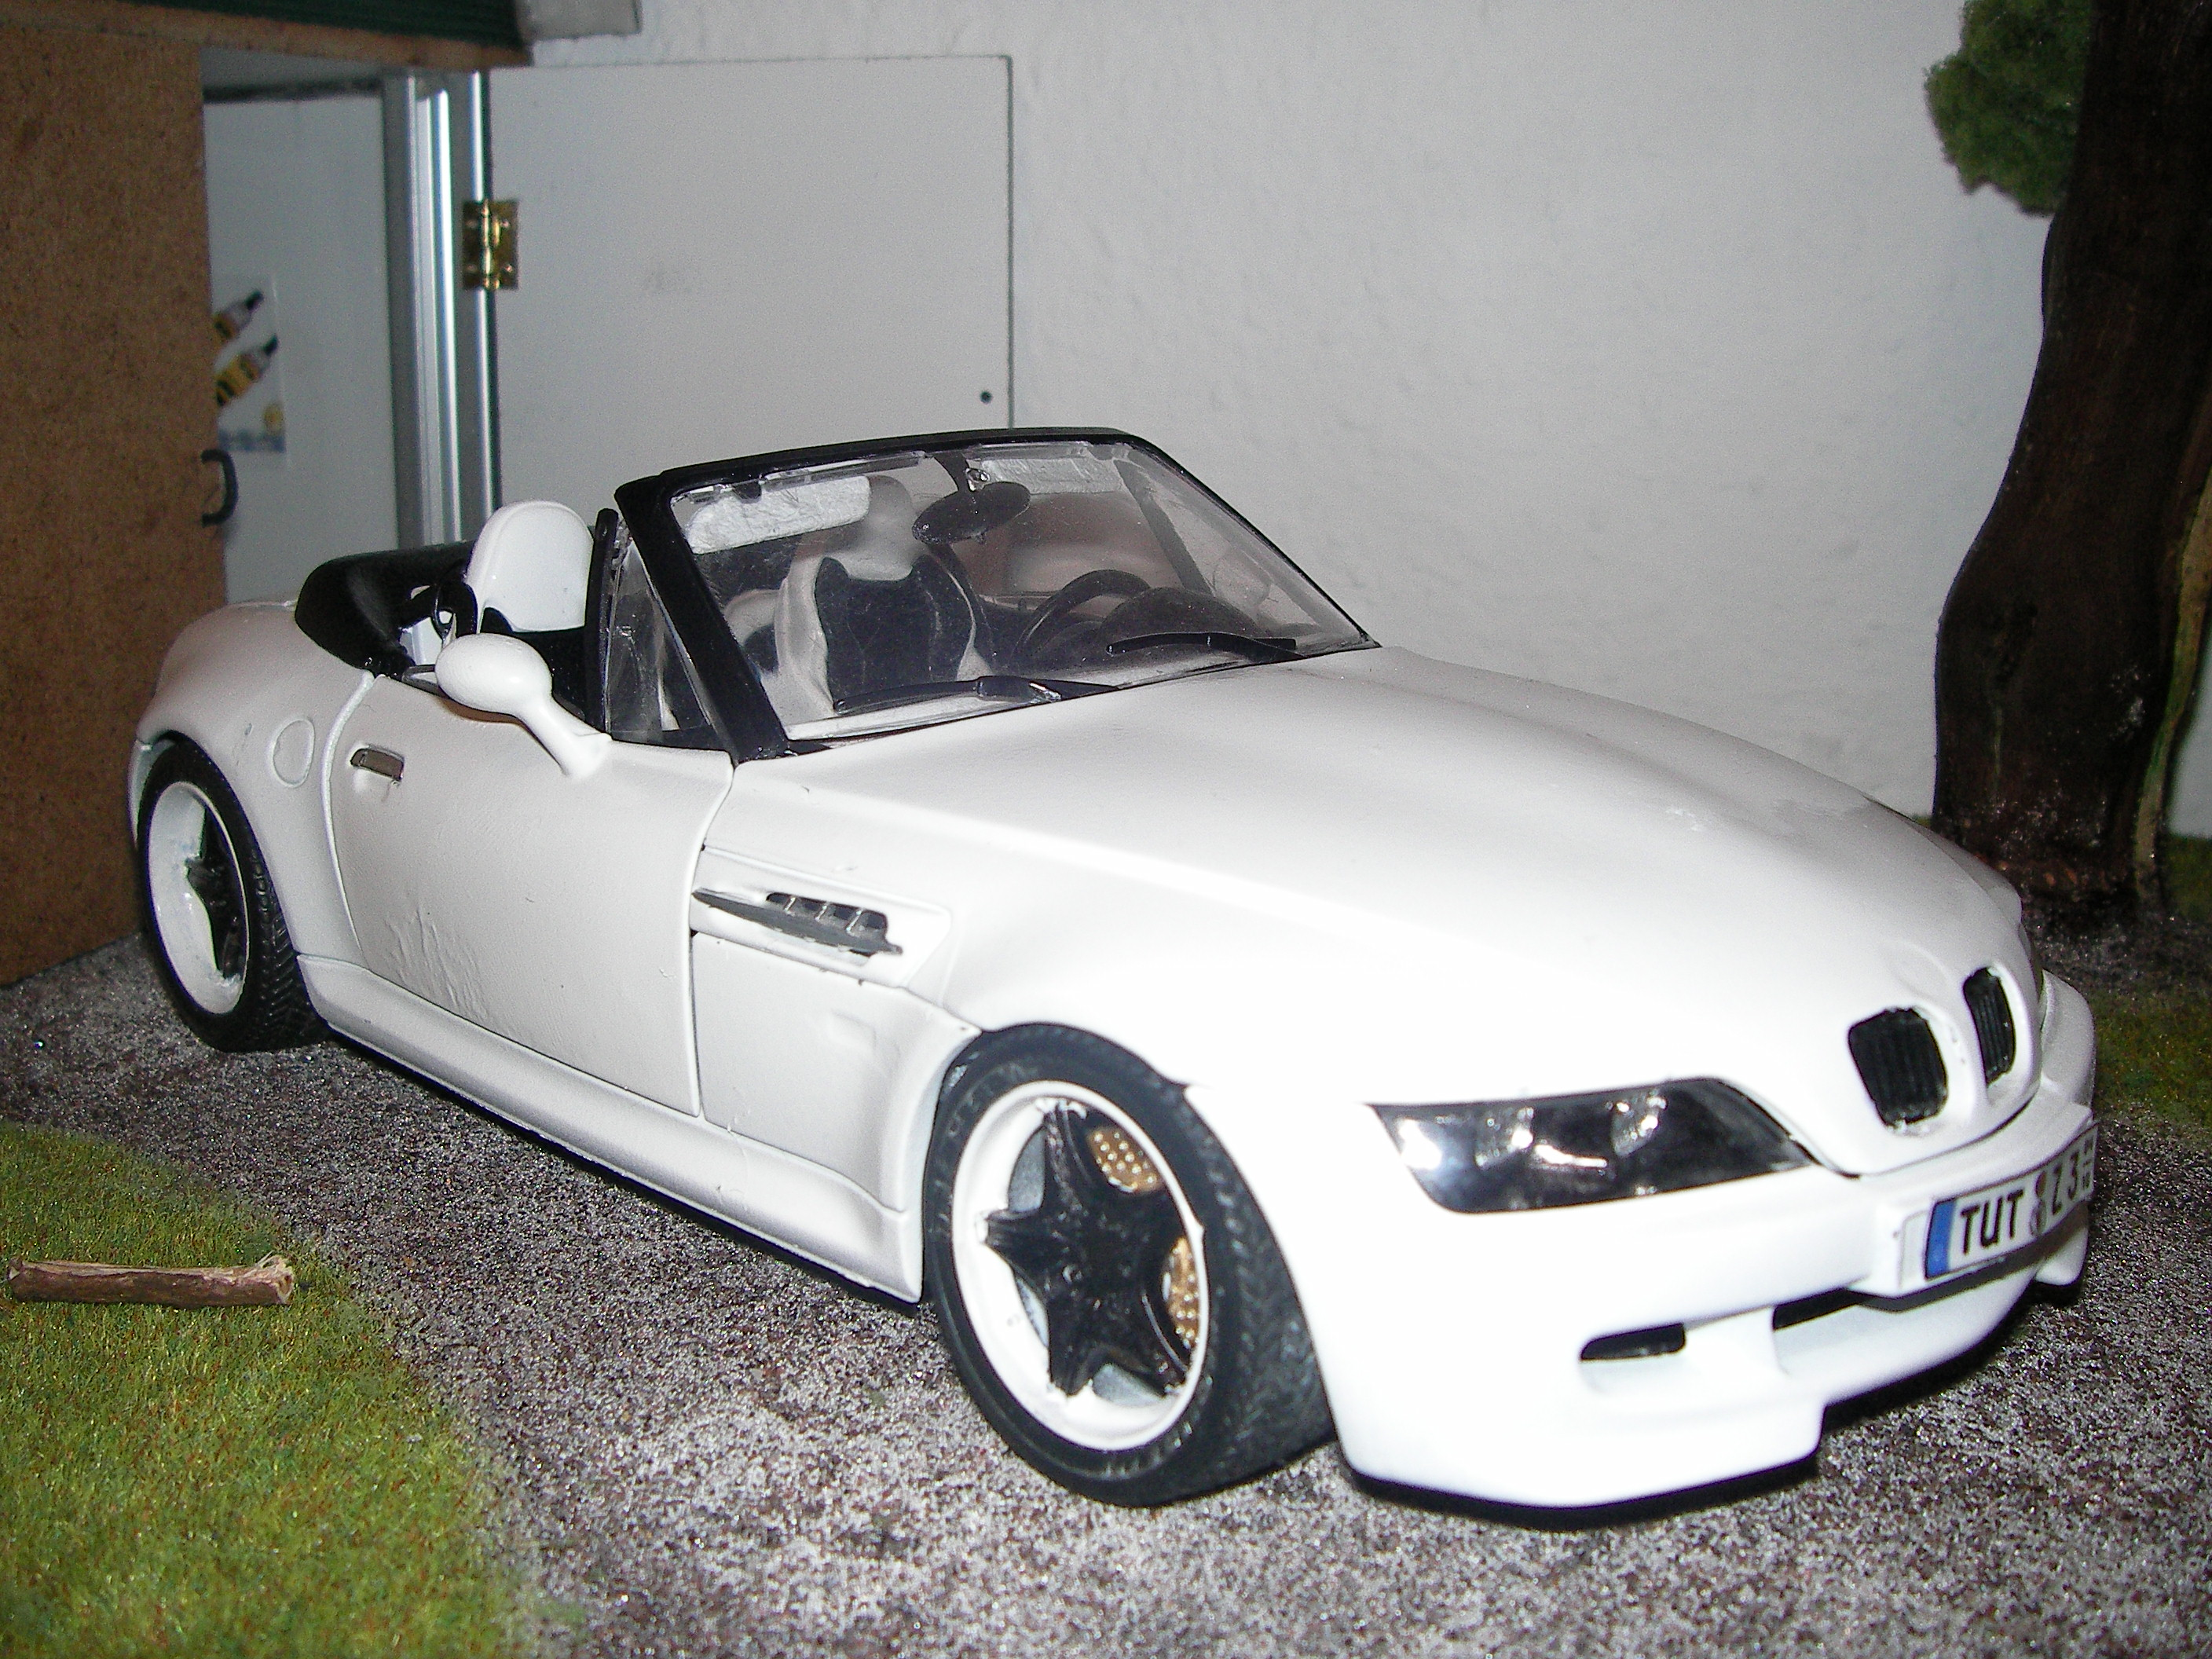 bmw z3 cabrio bmw z3 roadster cabrio bmw t bor bmw z3. Black Bedroom Furniture Sets. Home Design Ideas